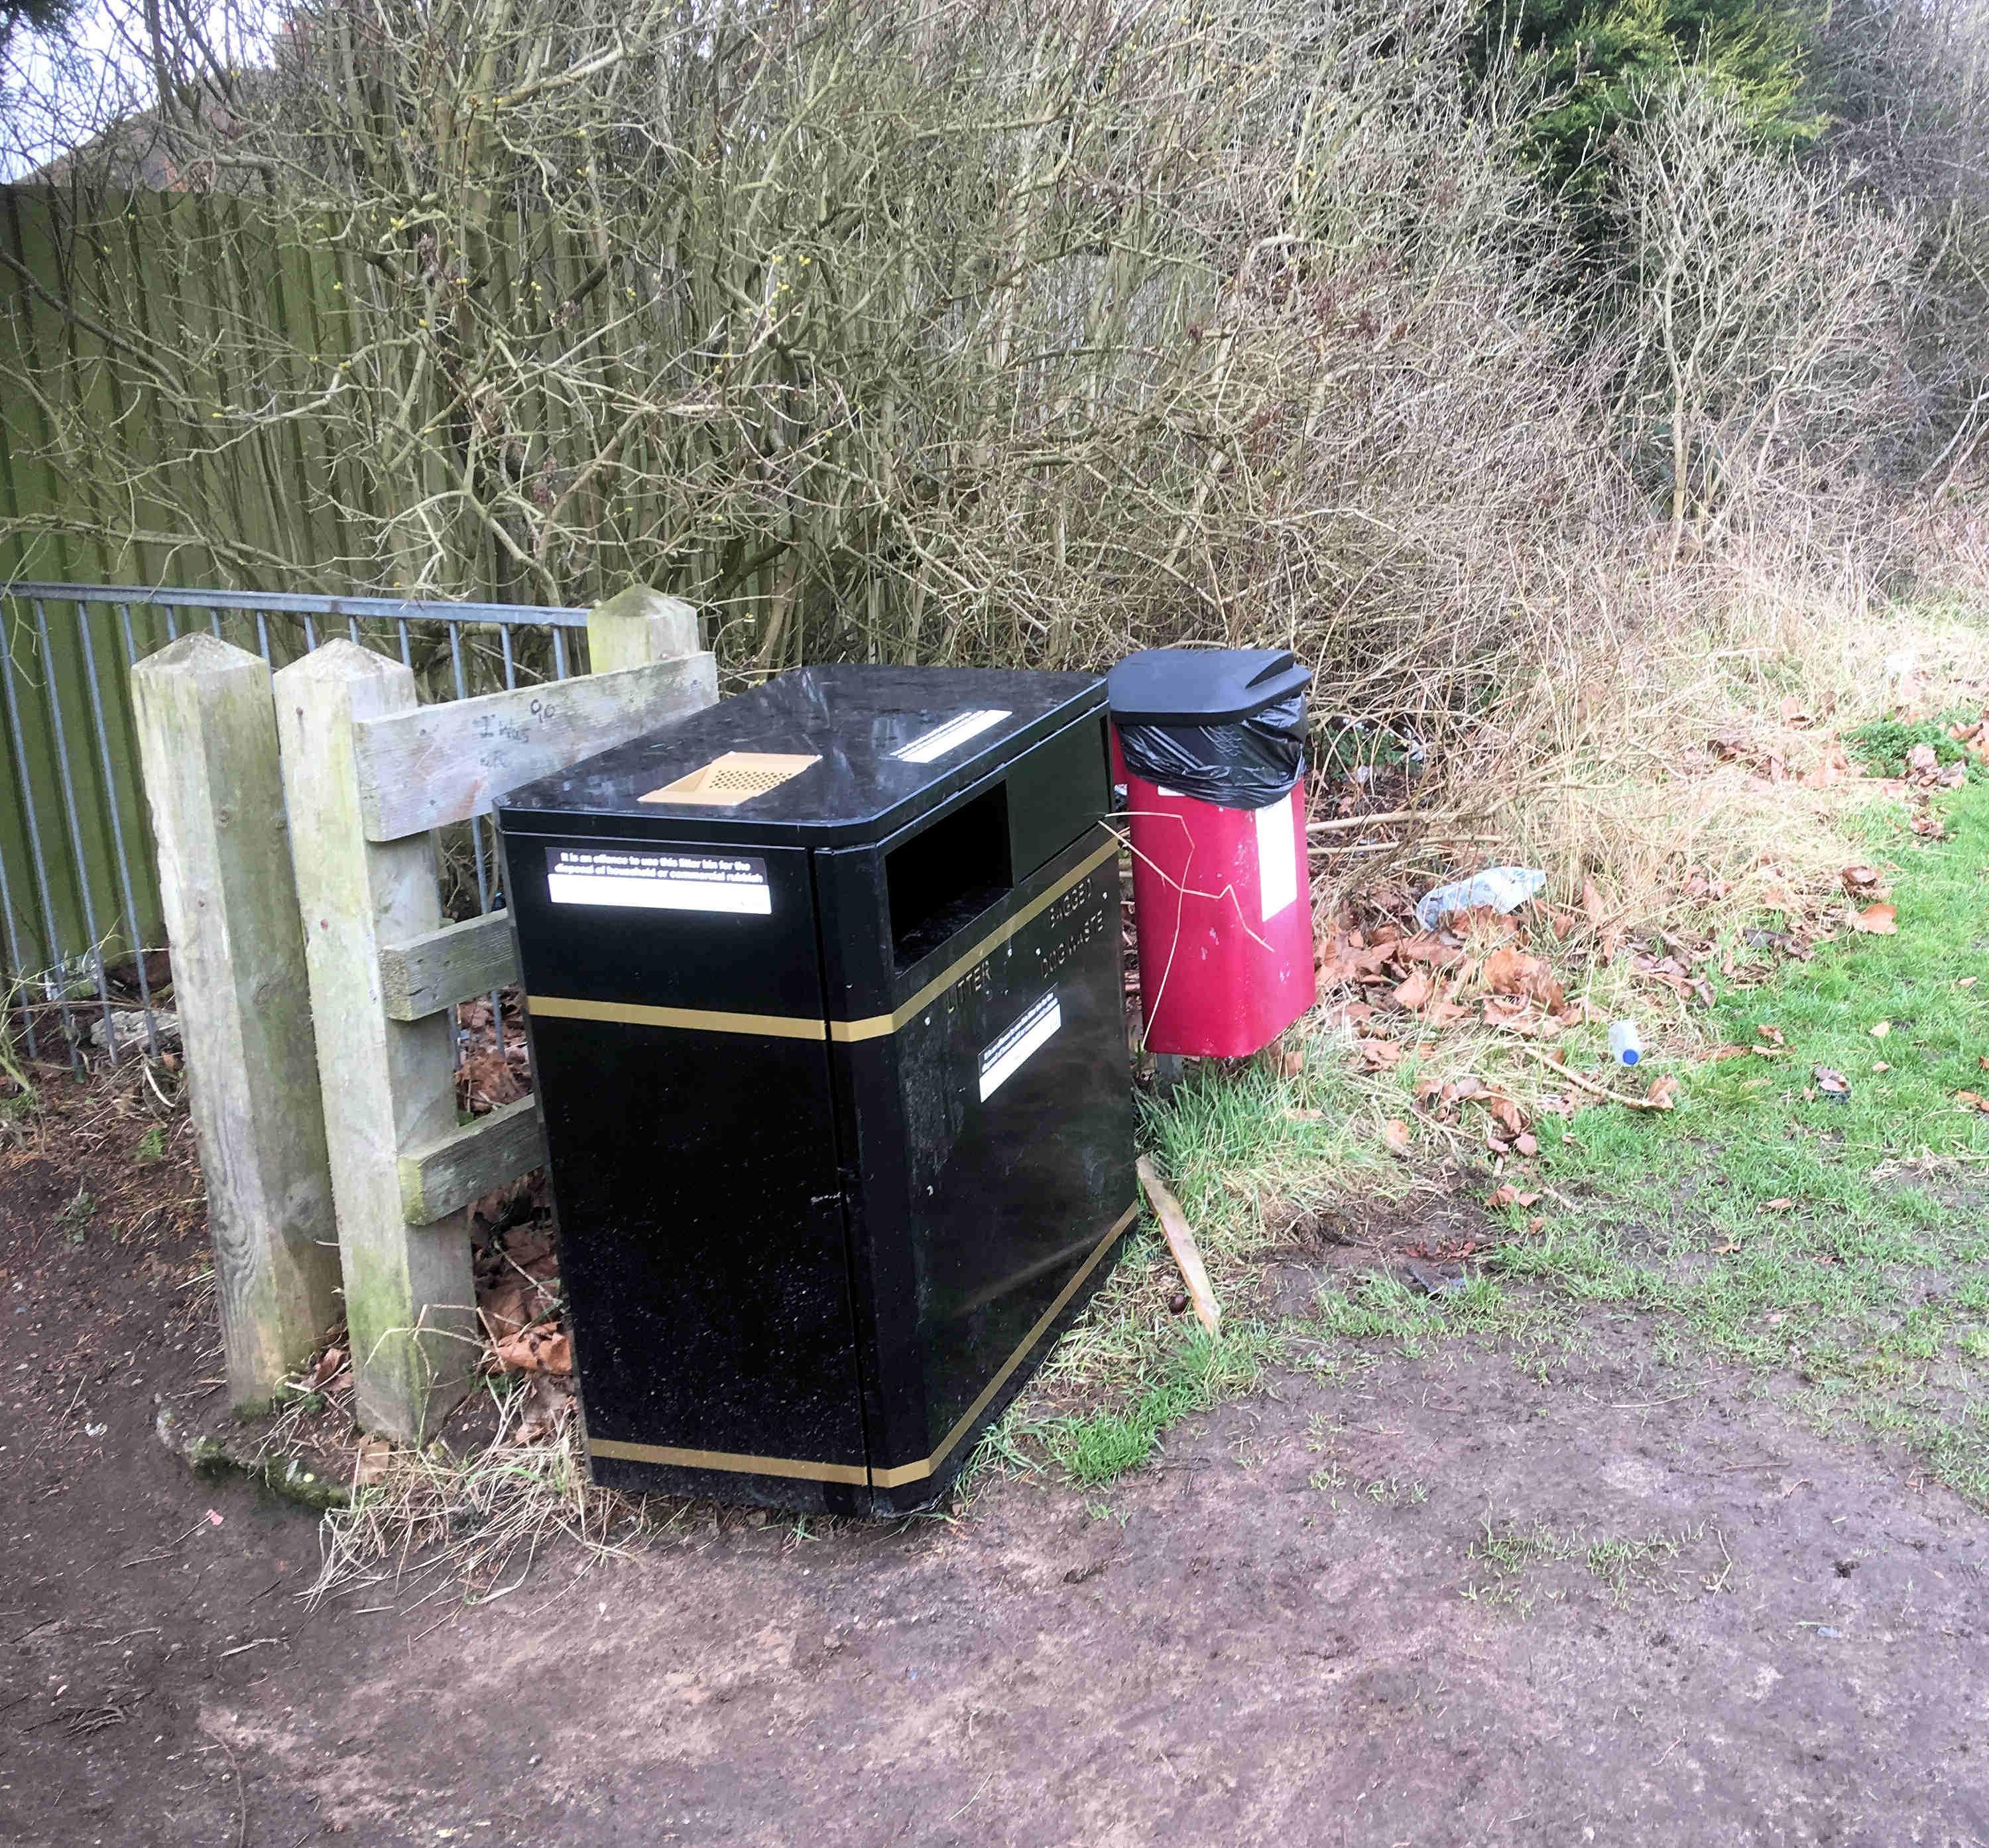 new-litter-bin-and-litter-bachelor-hill-field-1400-5th-feb-2017